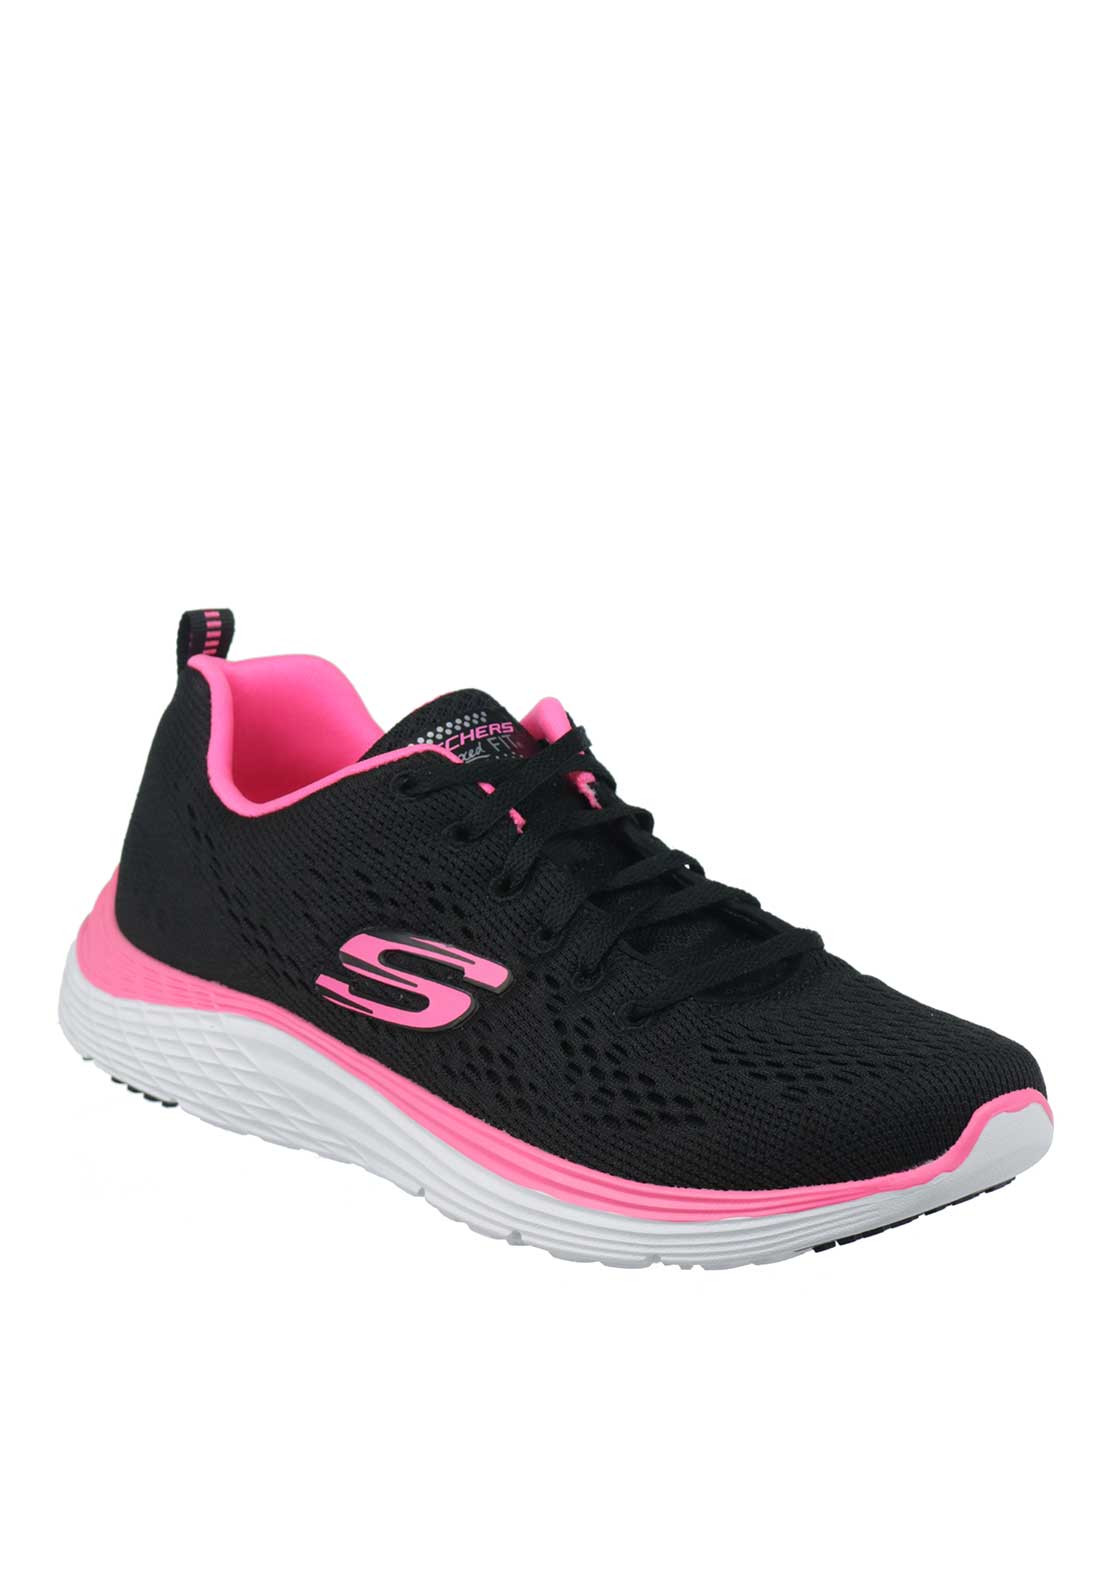 Skechers Womens Relaxed Fit Knit Trainers, Black and Pink